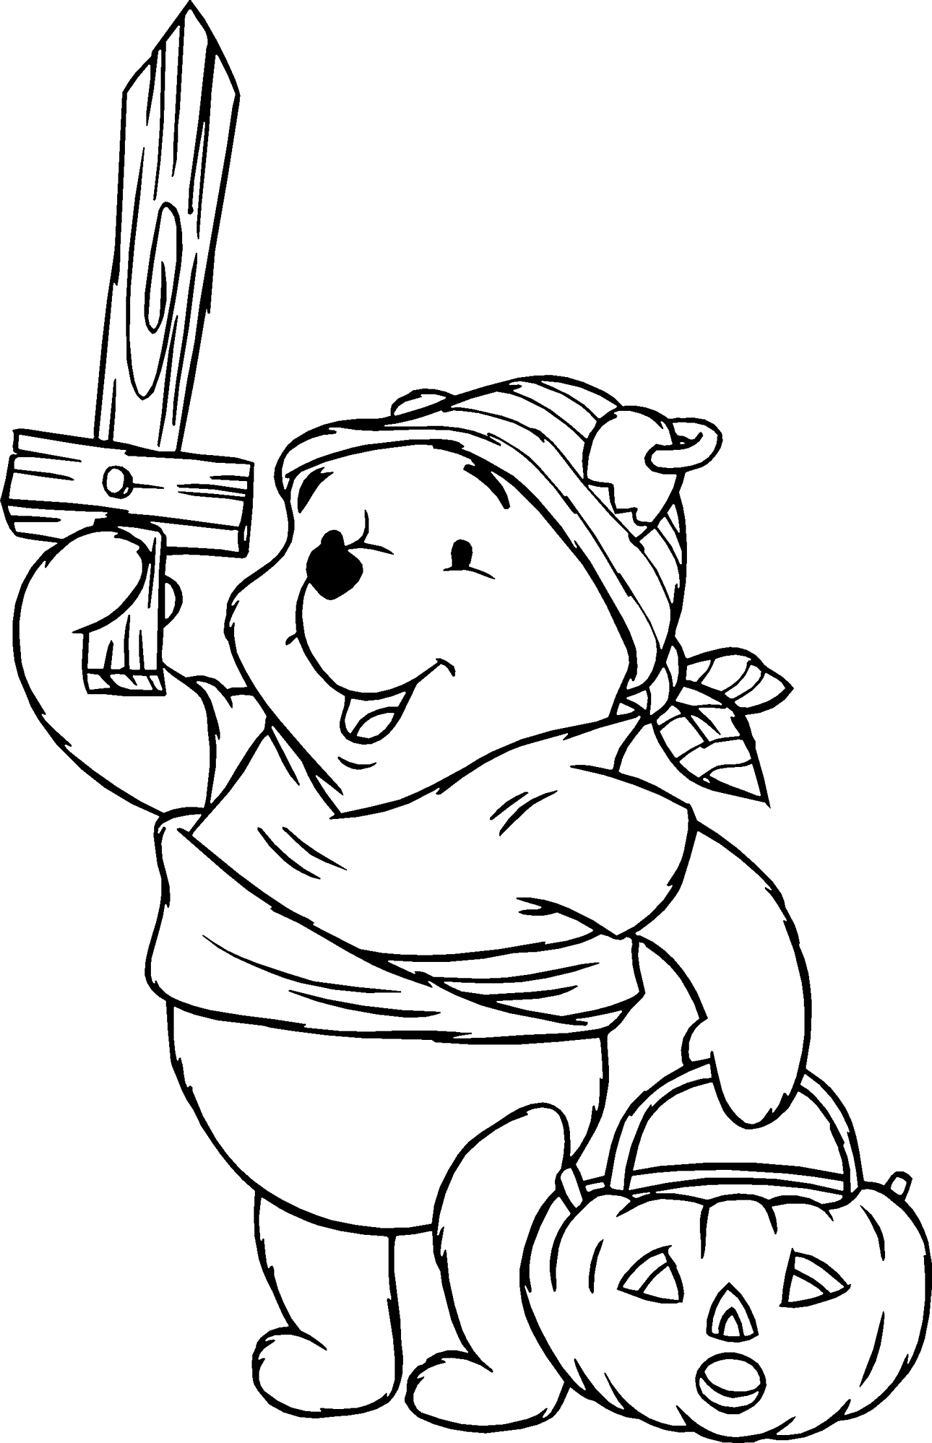 halloween coloring pages toddlers - photo#22